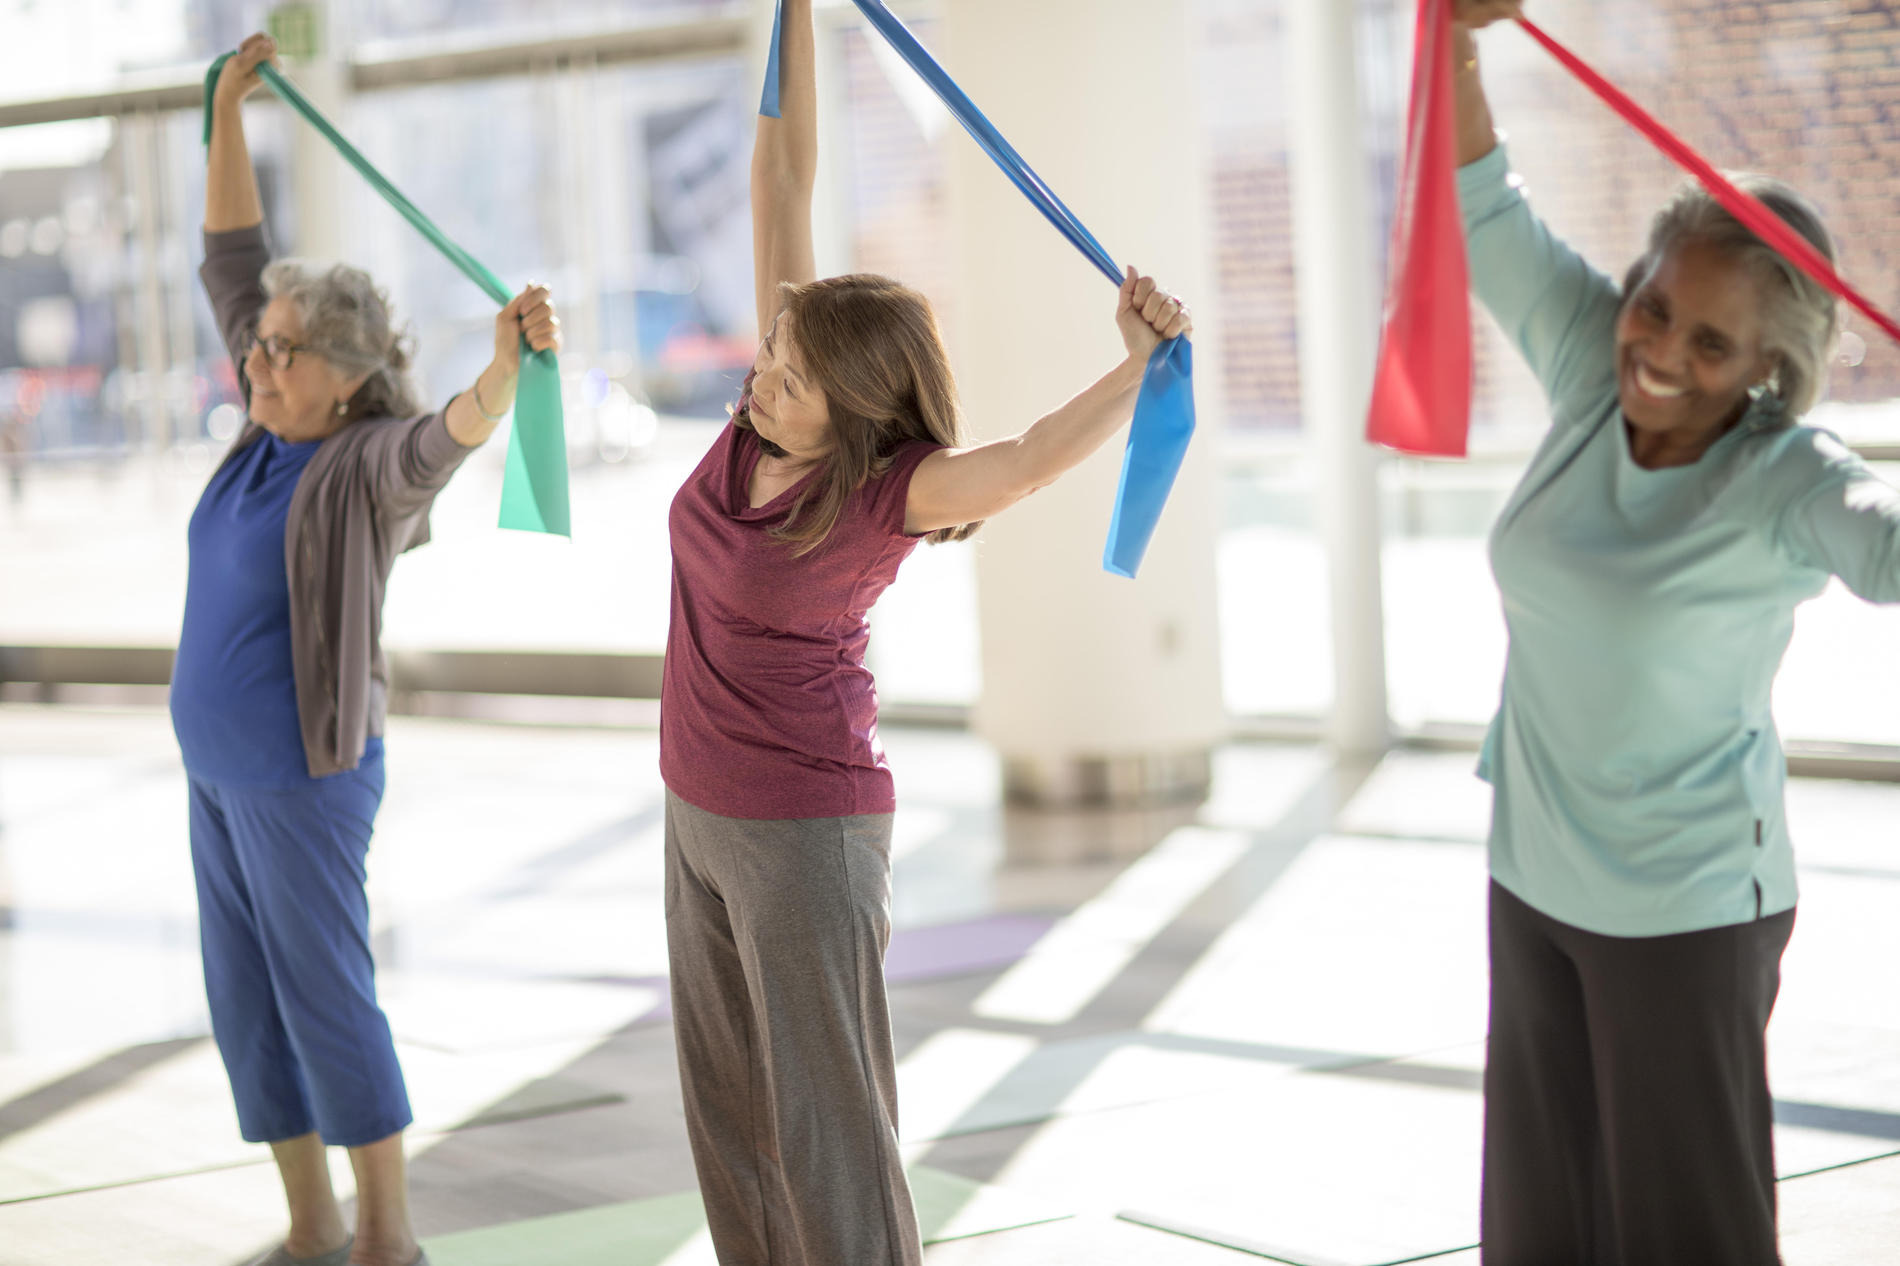 Three senior women stretching in exercise class